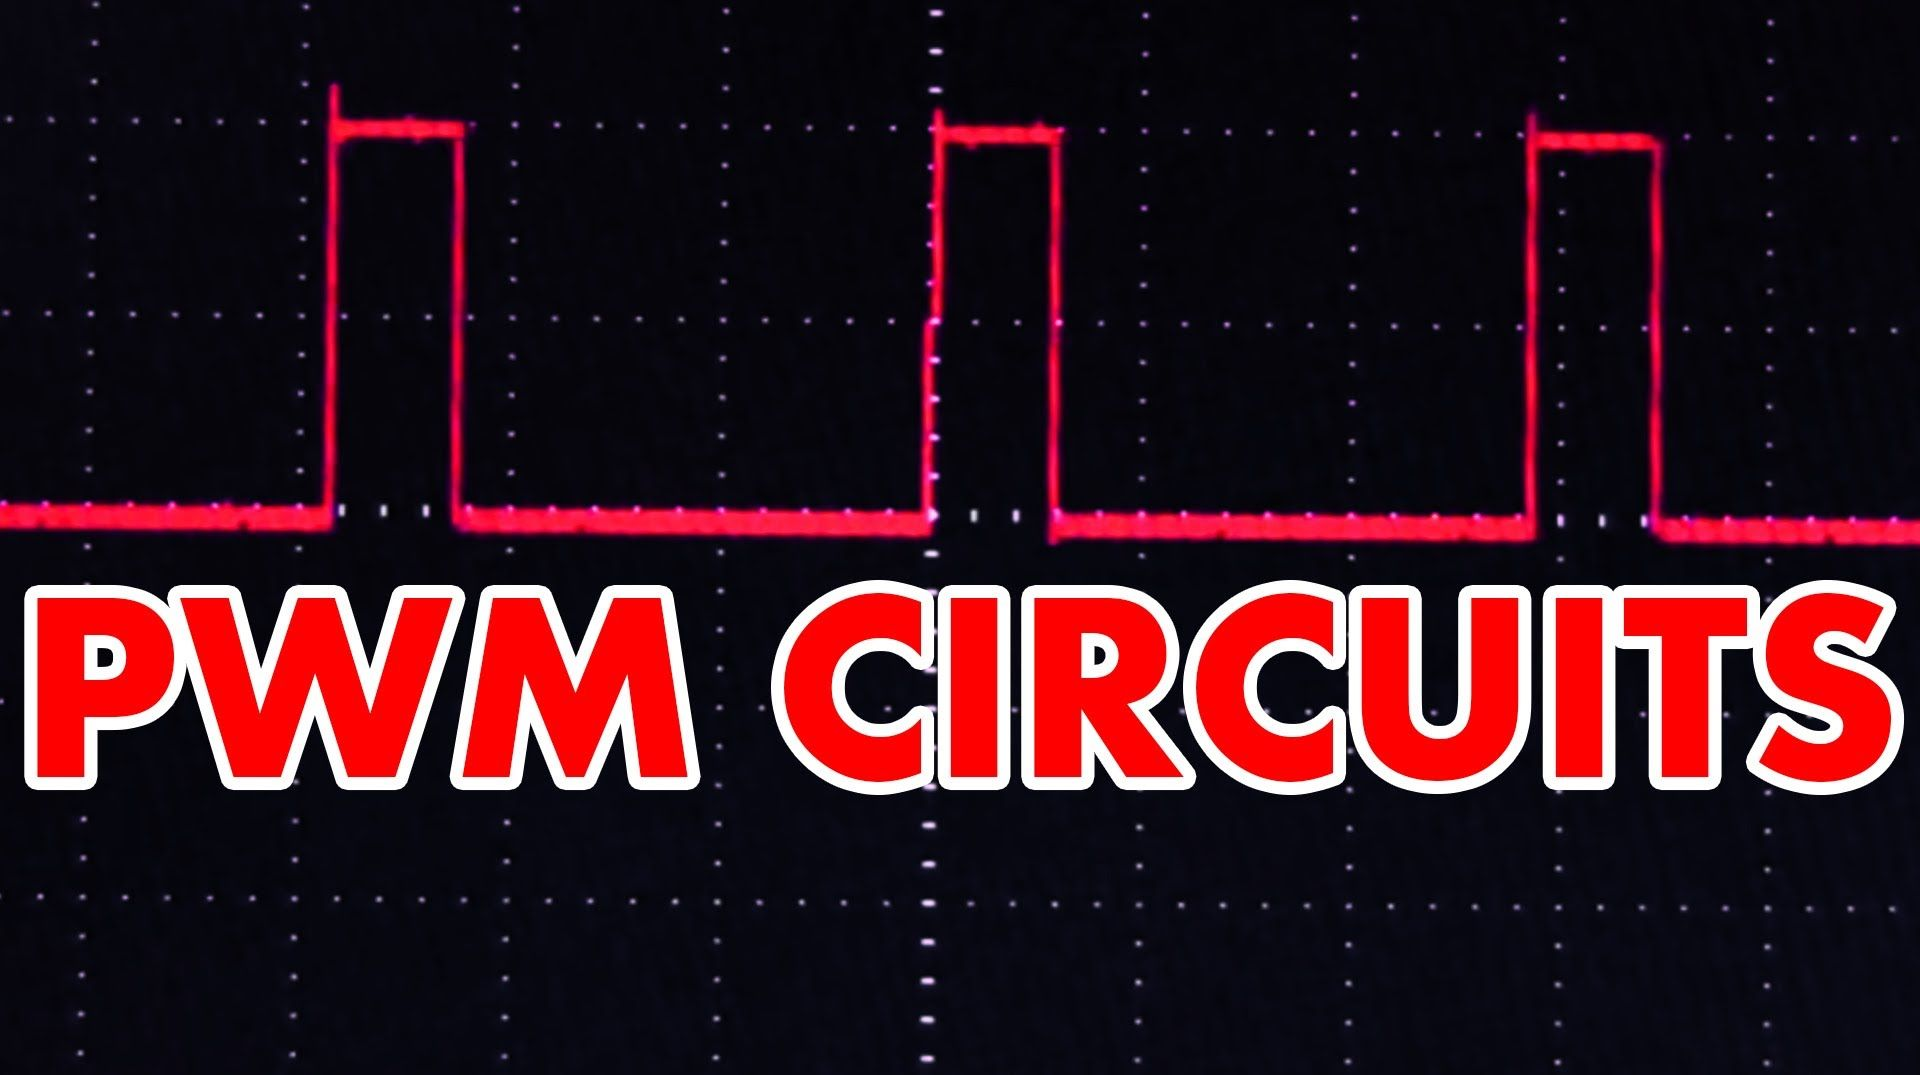 I Cover The Basics Of Pwm And Show You How To Cheaply Build A 50 Watt Audio Amplifier Lm3876 Electrical Engineering